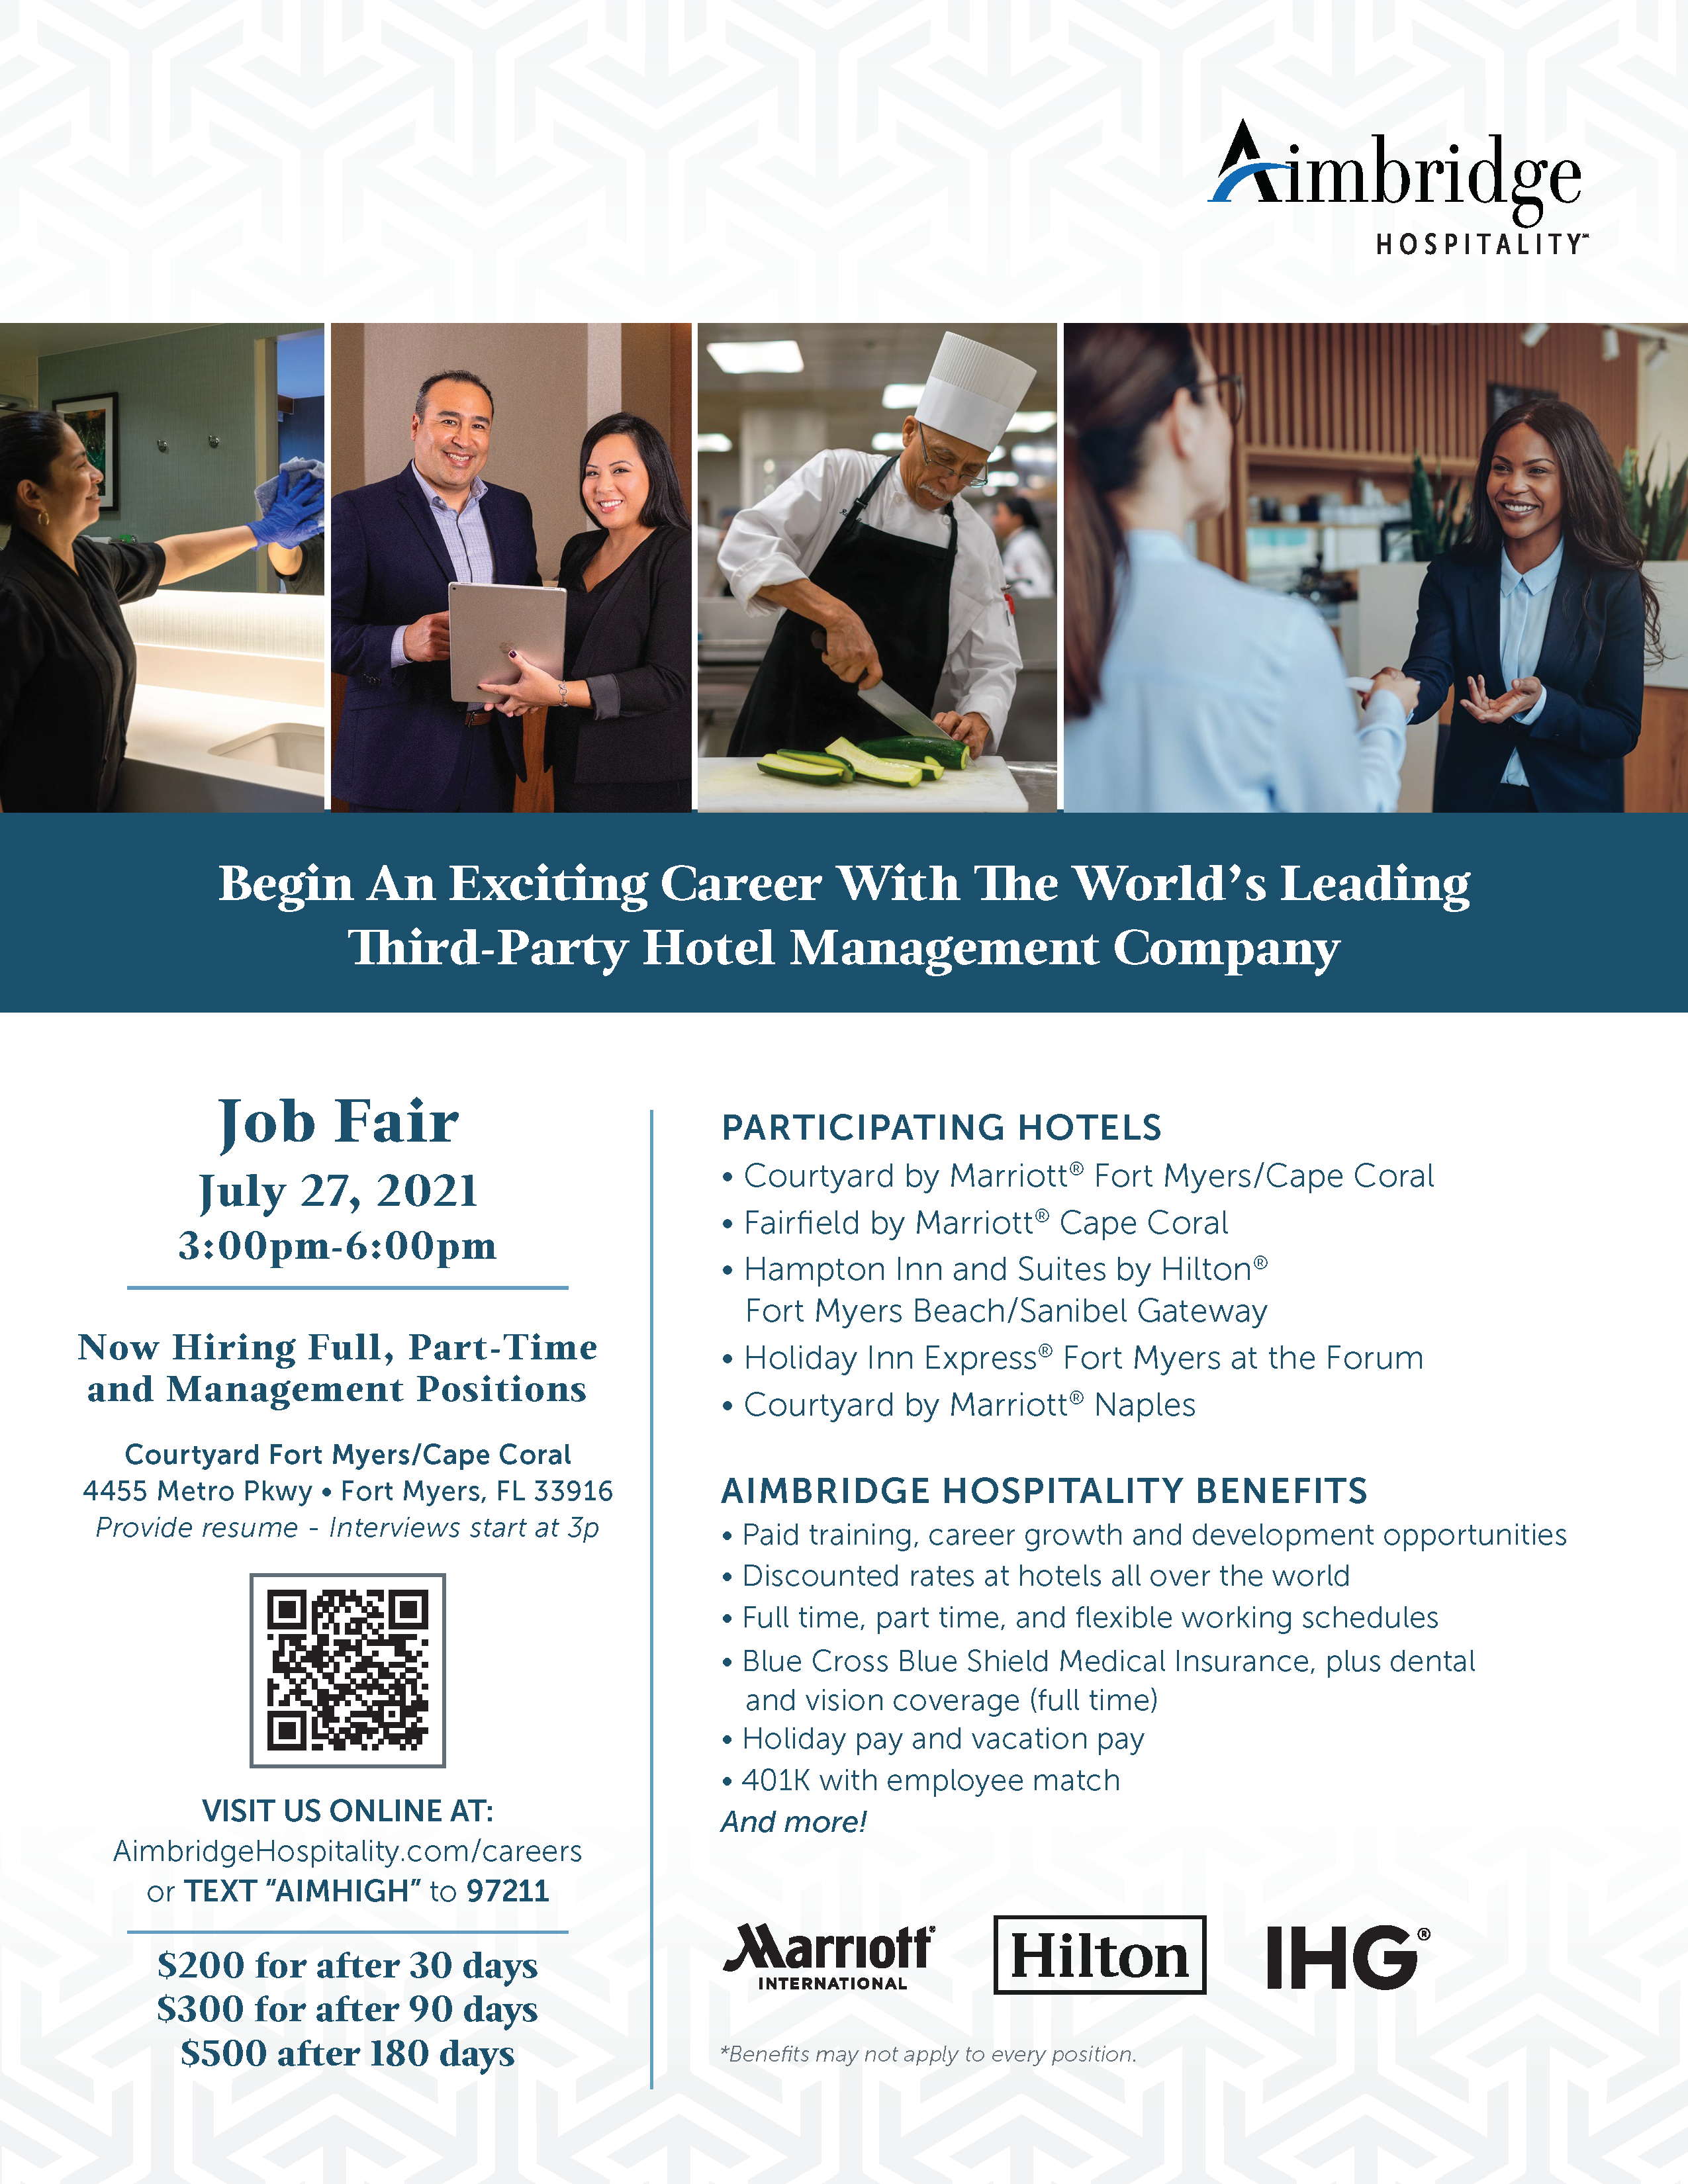 Job fair July 27 at Courtyard Fort Myers/Cape Coral